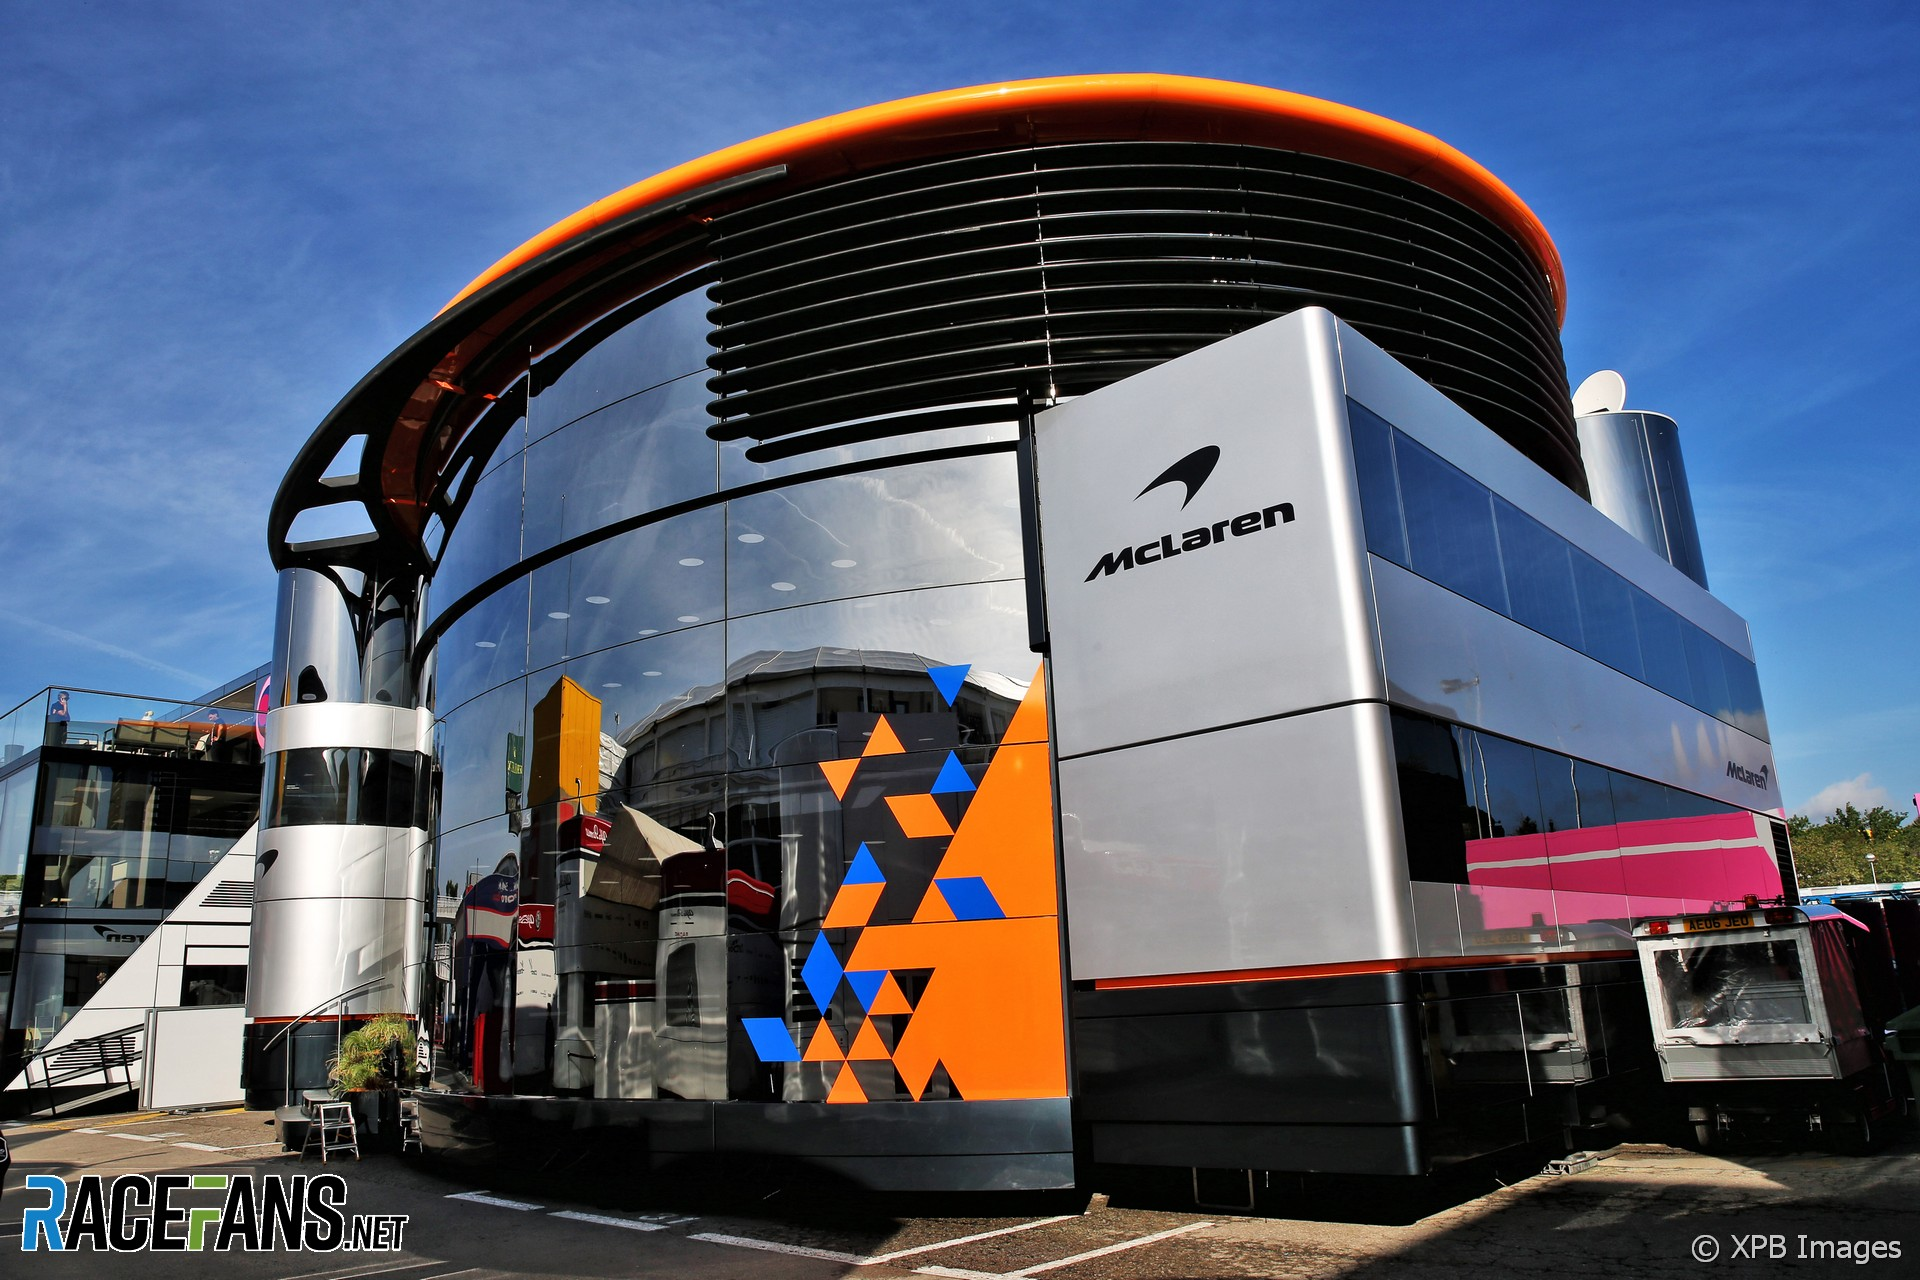 2019 F1 Motorhomes - Racing Comments - The Autosport Forums